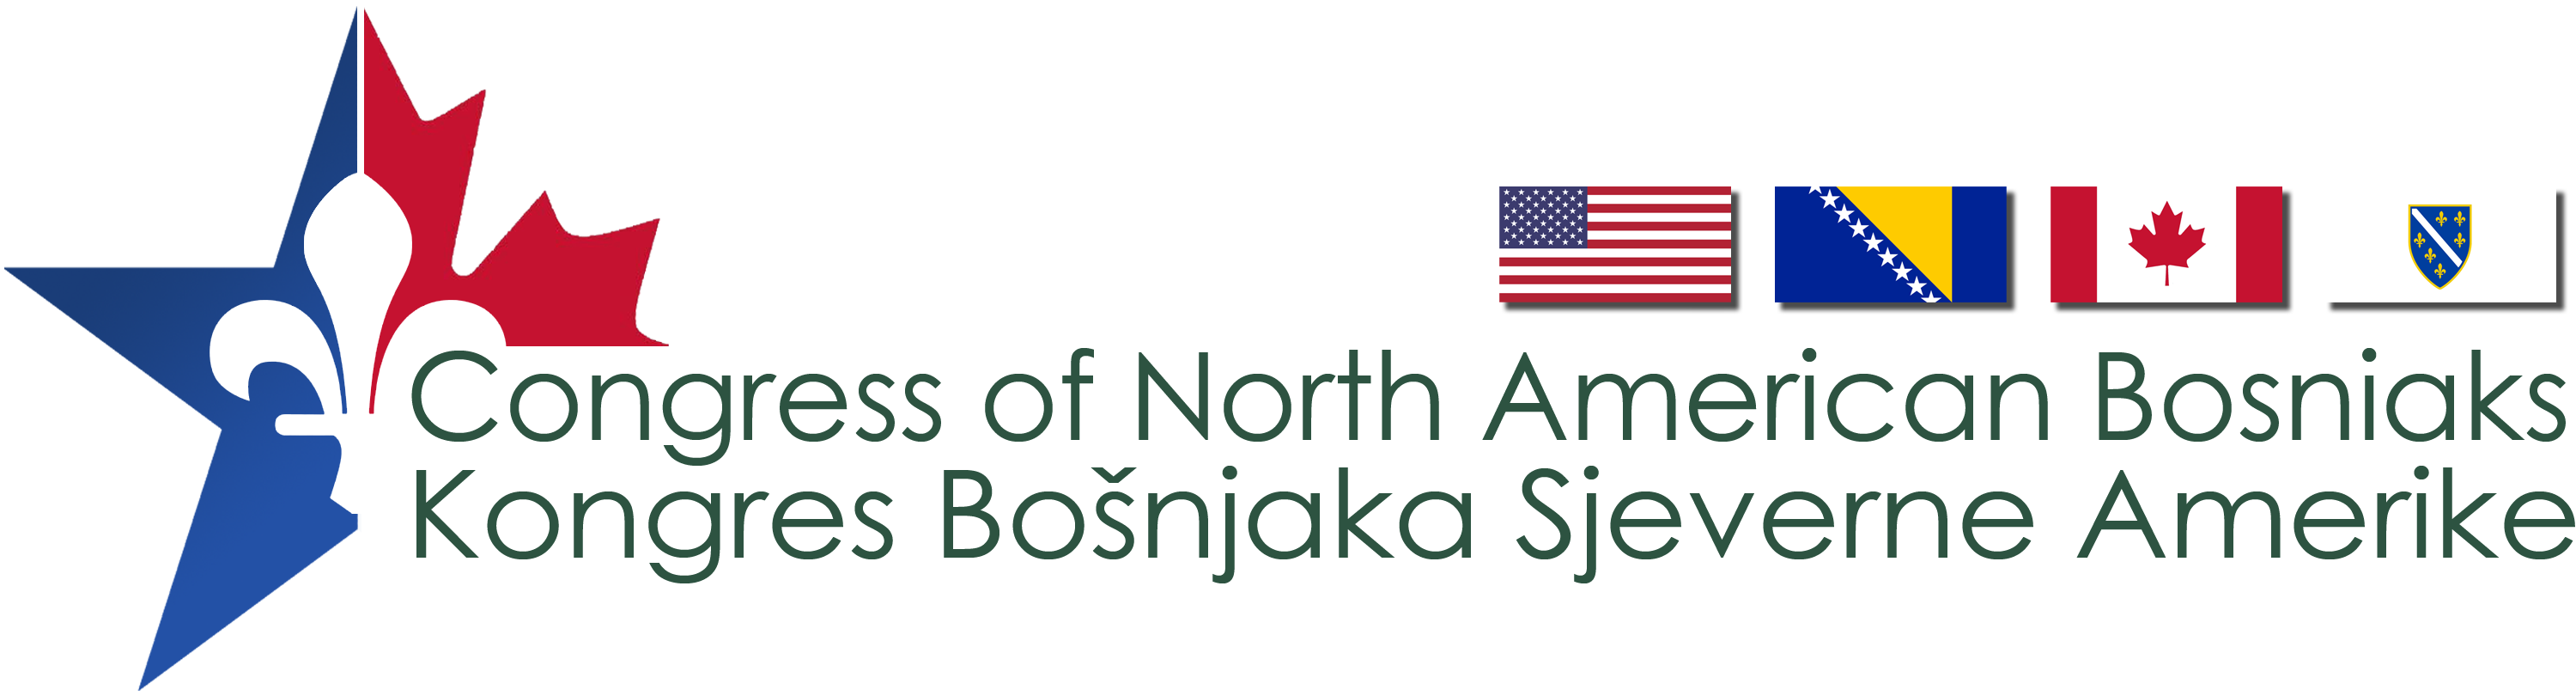 Congress of North American Bosniaks